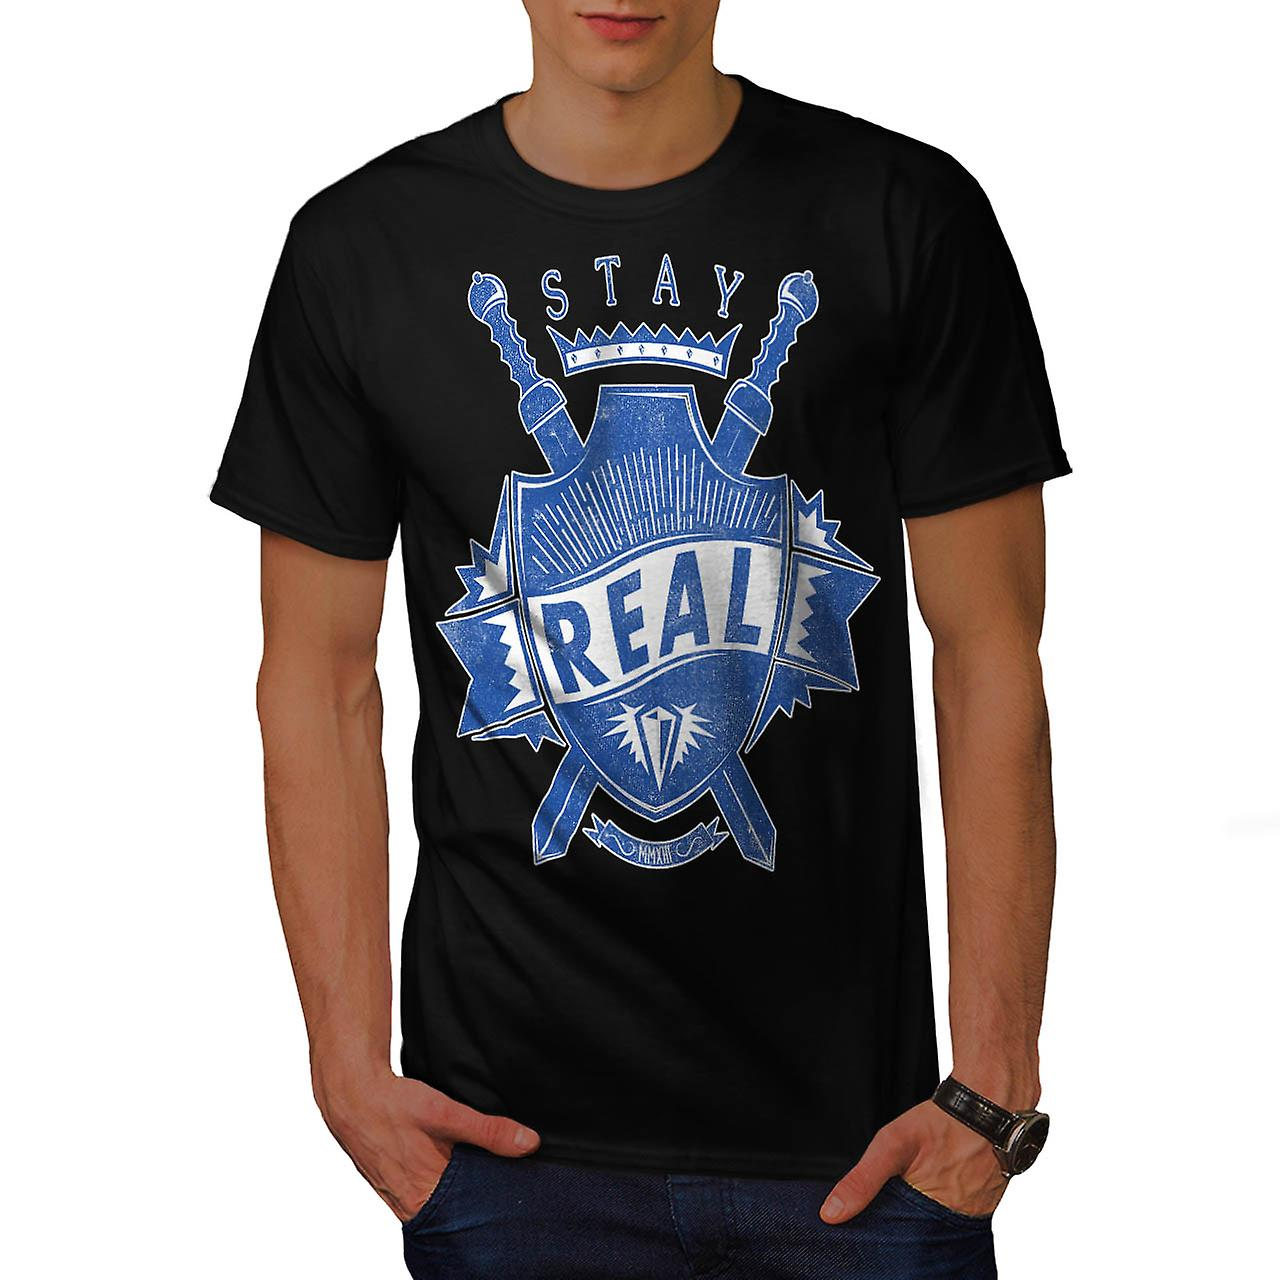 Stay Real Ambition Sword Shield Men Black T-shirt | Wellcoda